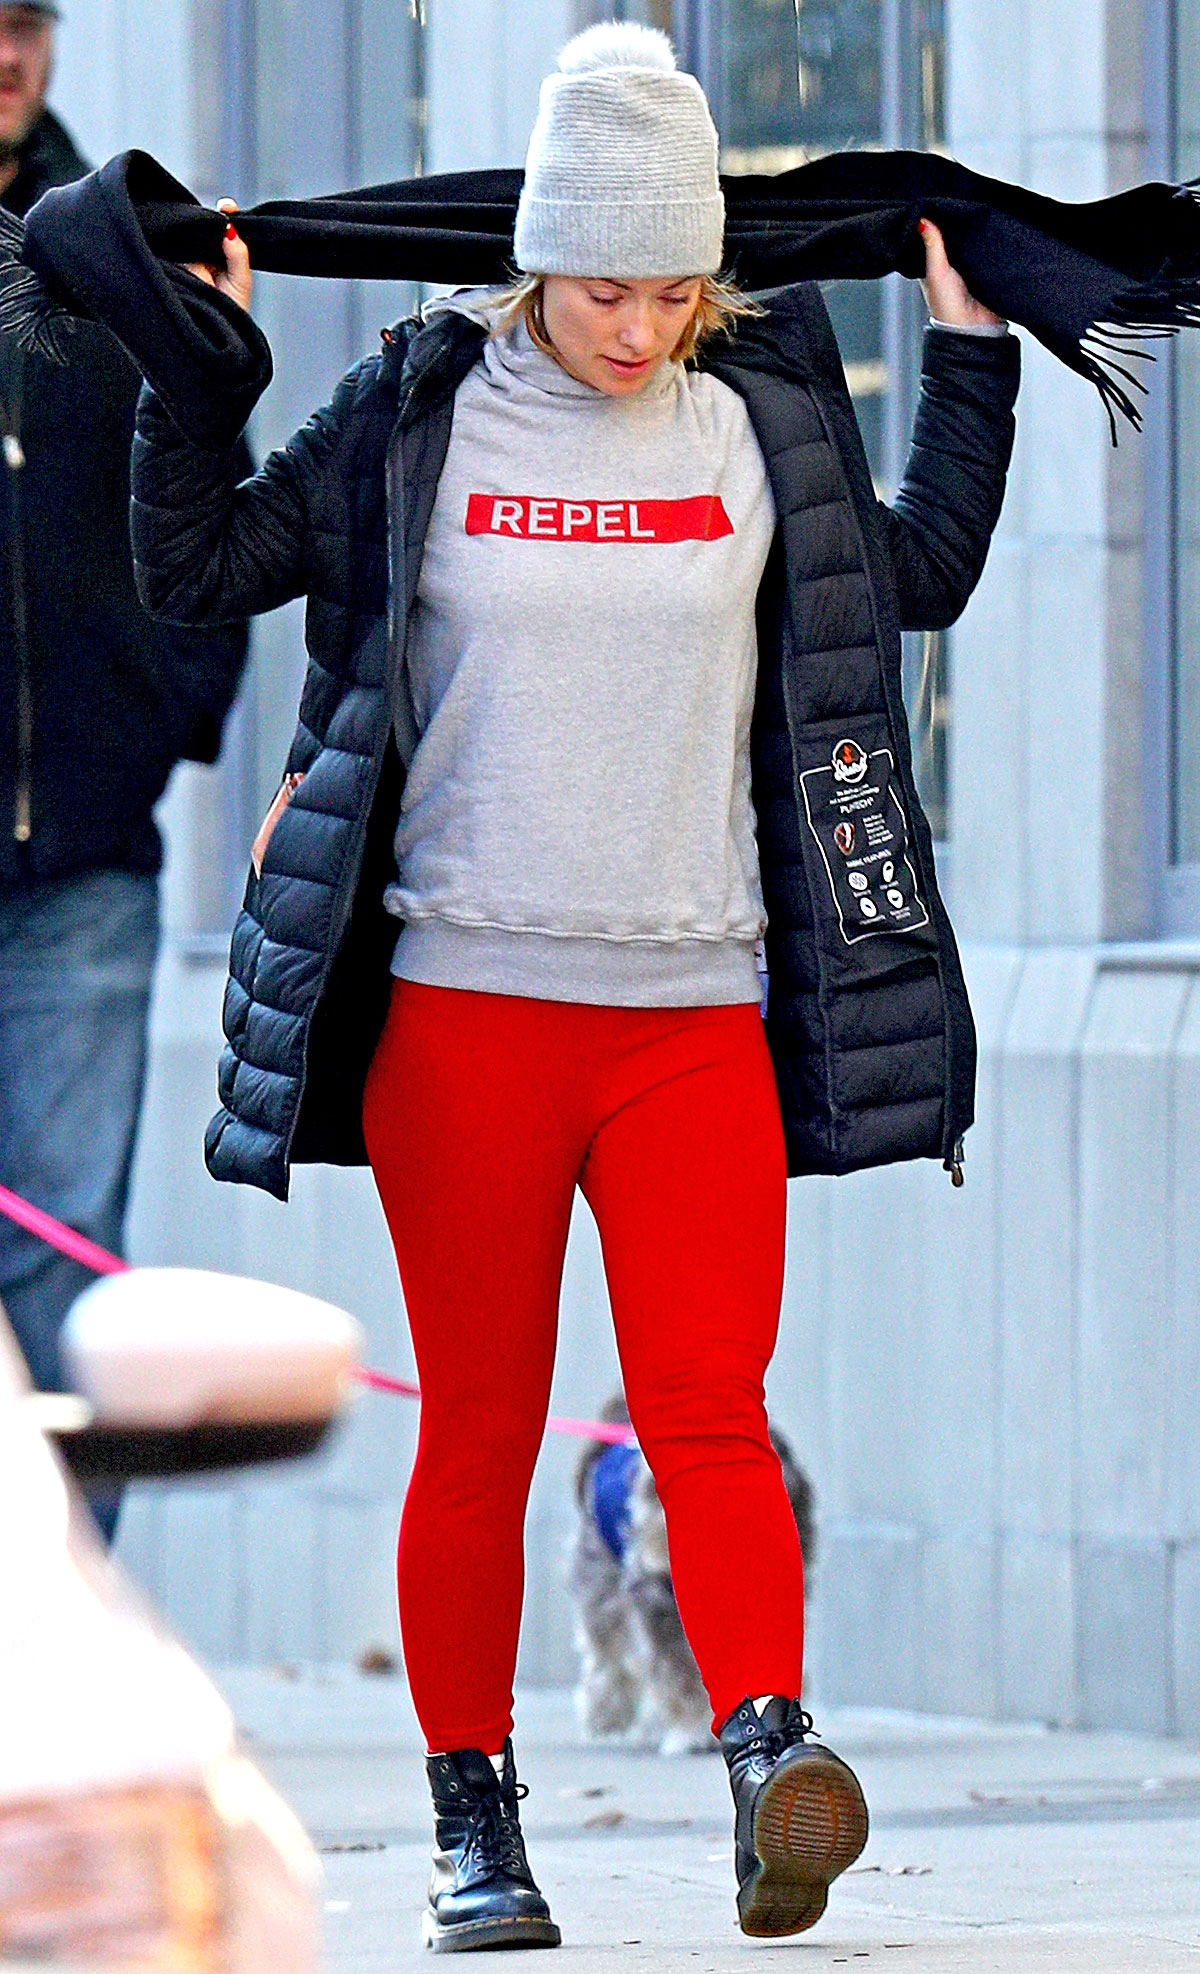 EXCLUSIVE: Olivia Wilde steps out wearing Red leggings and Dr. Martens boots